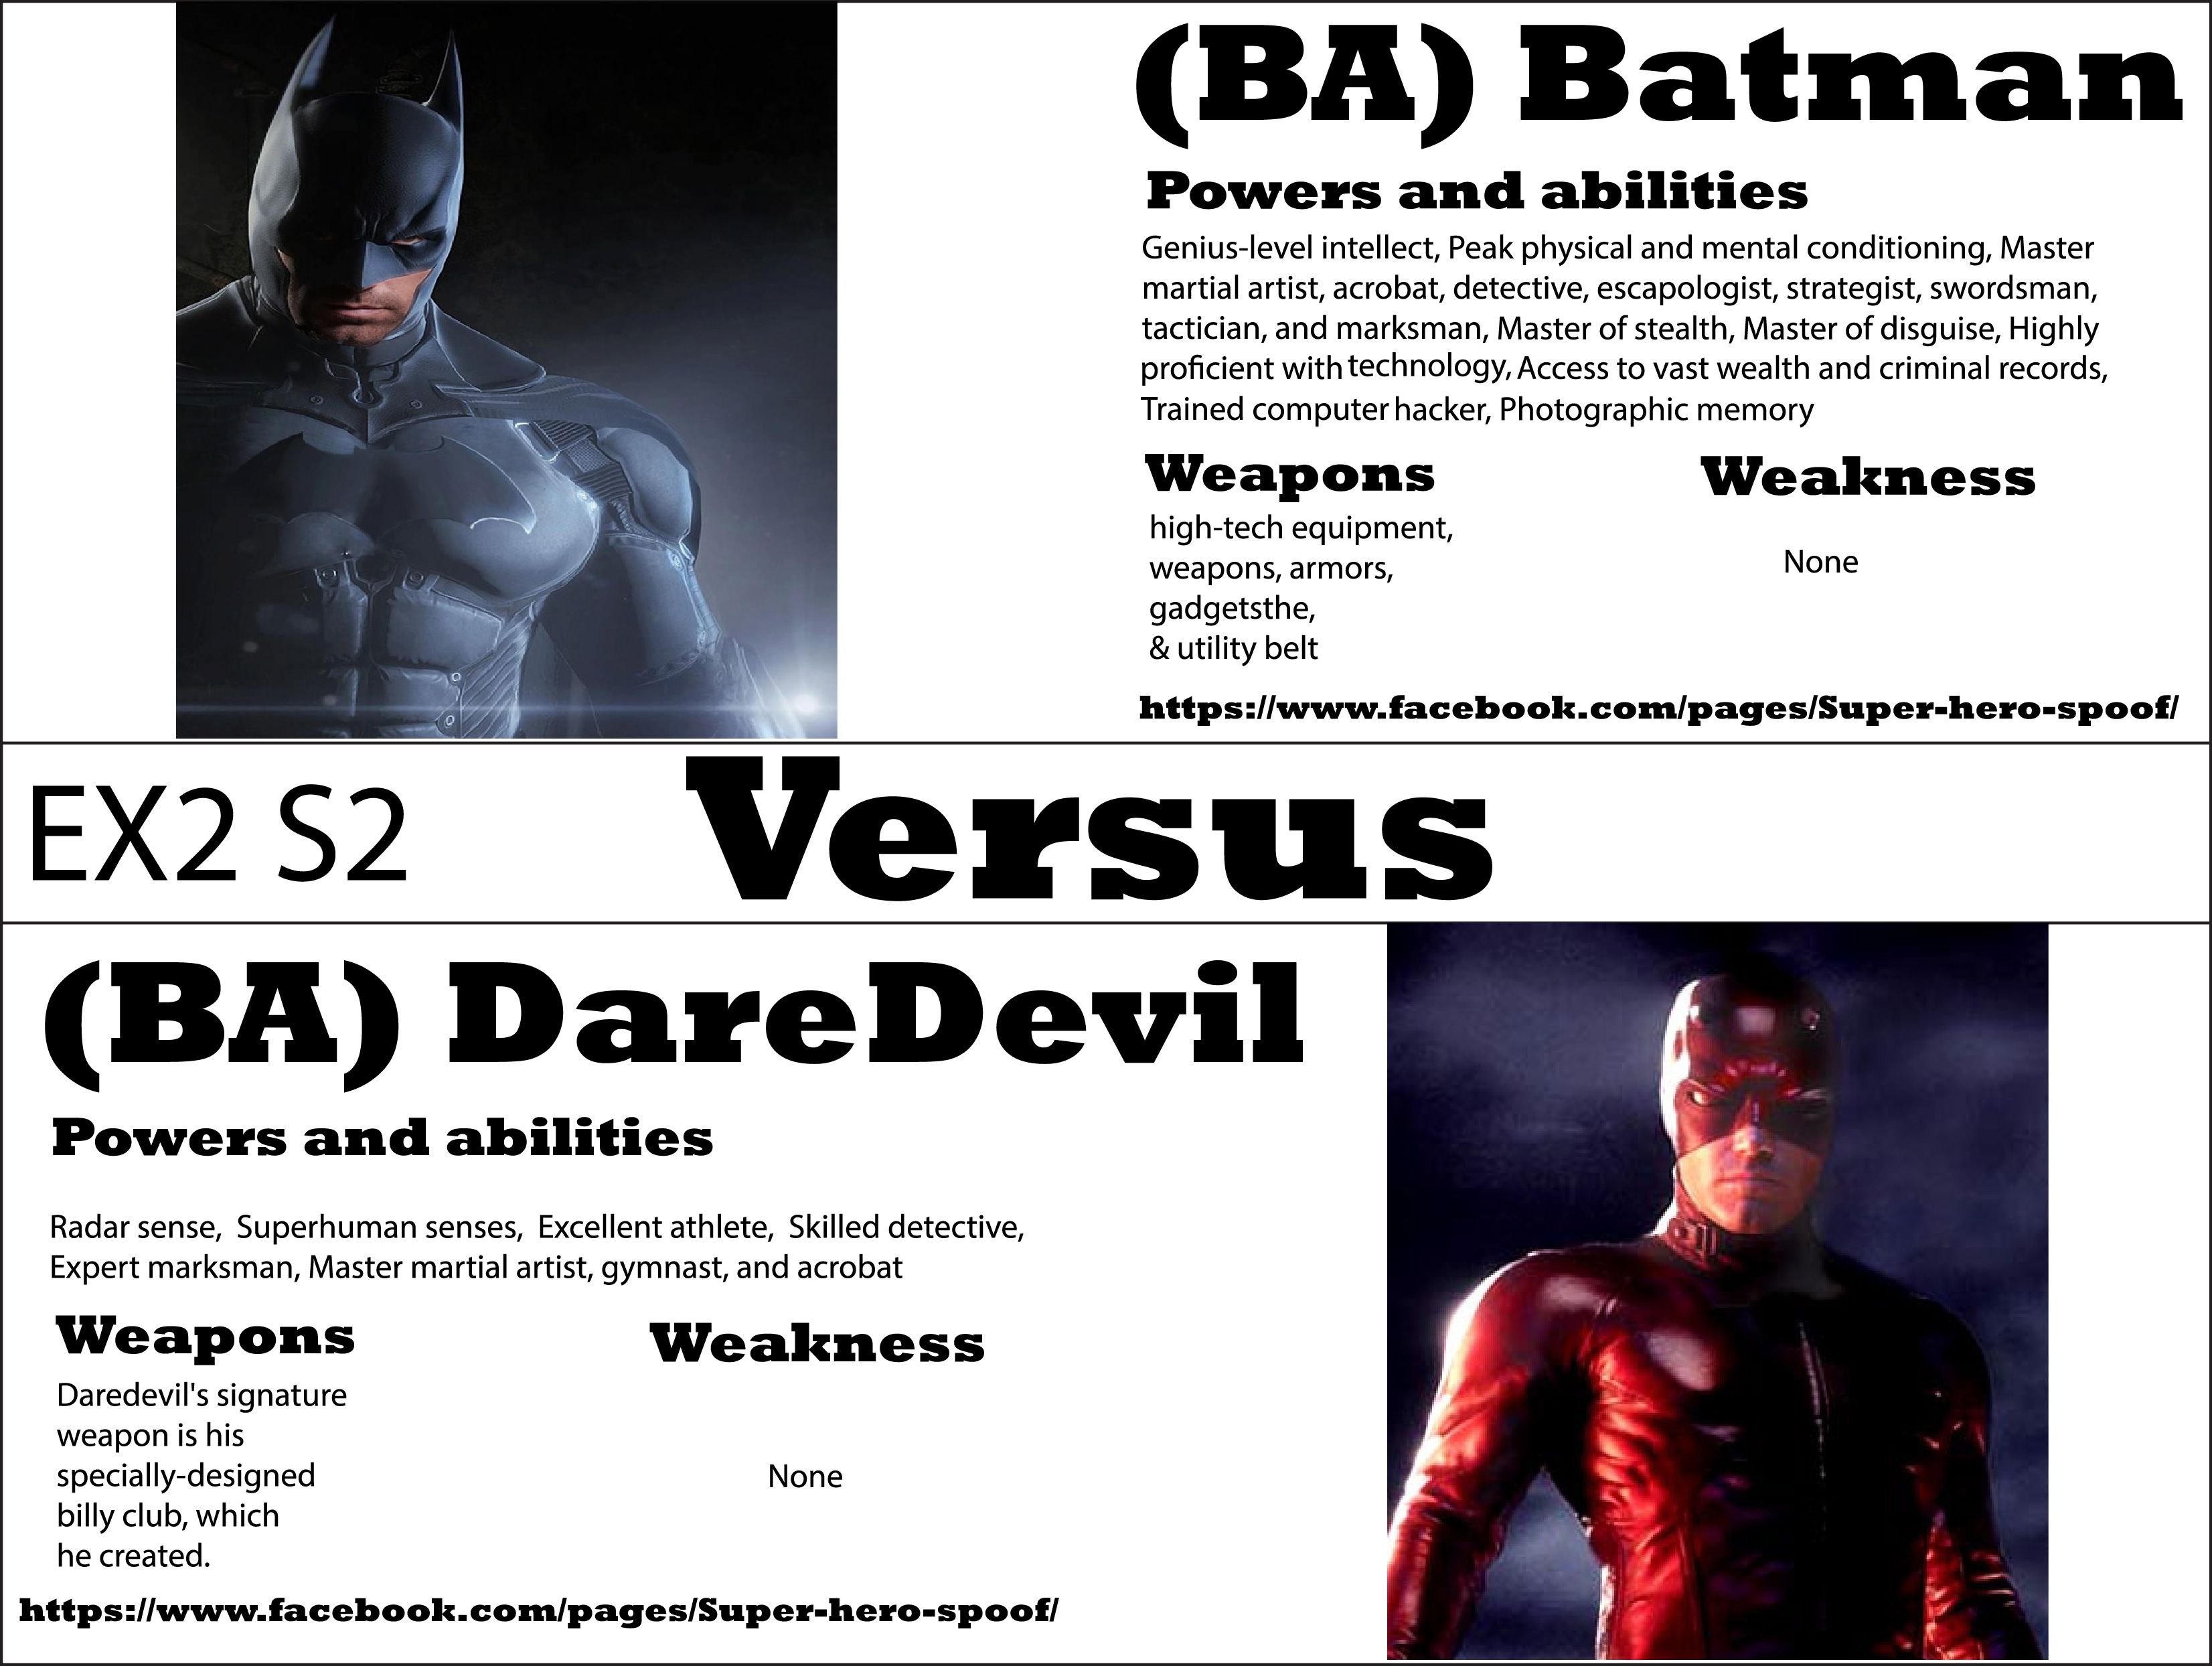 batman vs daredevil who will win and why powers abilities batman vs daredevil who will win and why powers abilities weaknesses